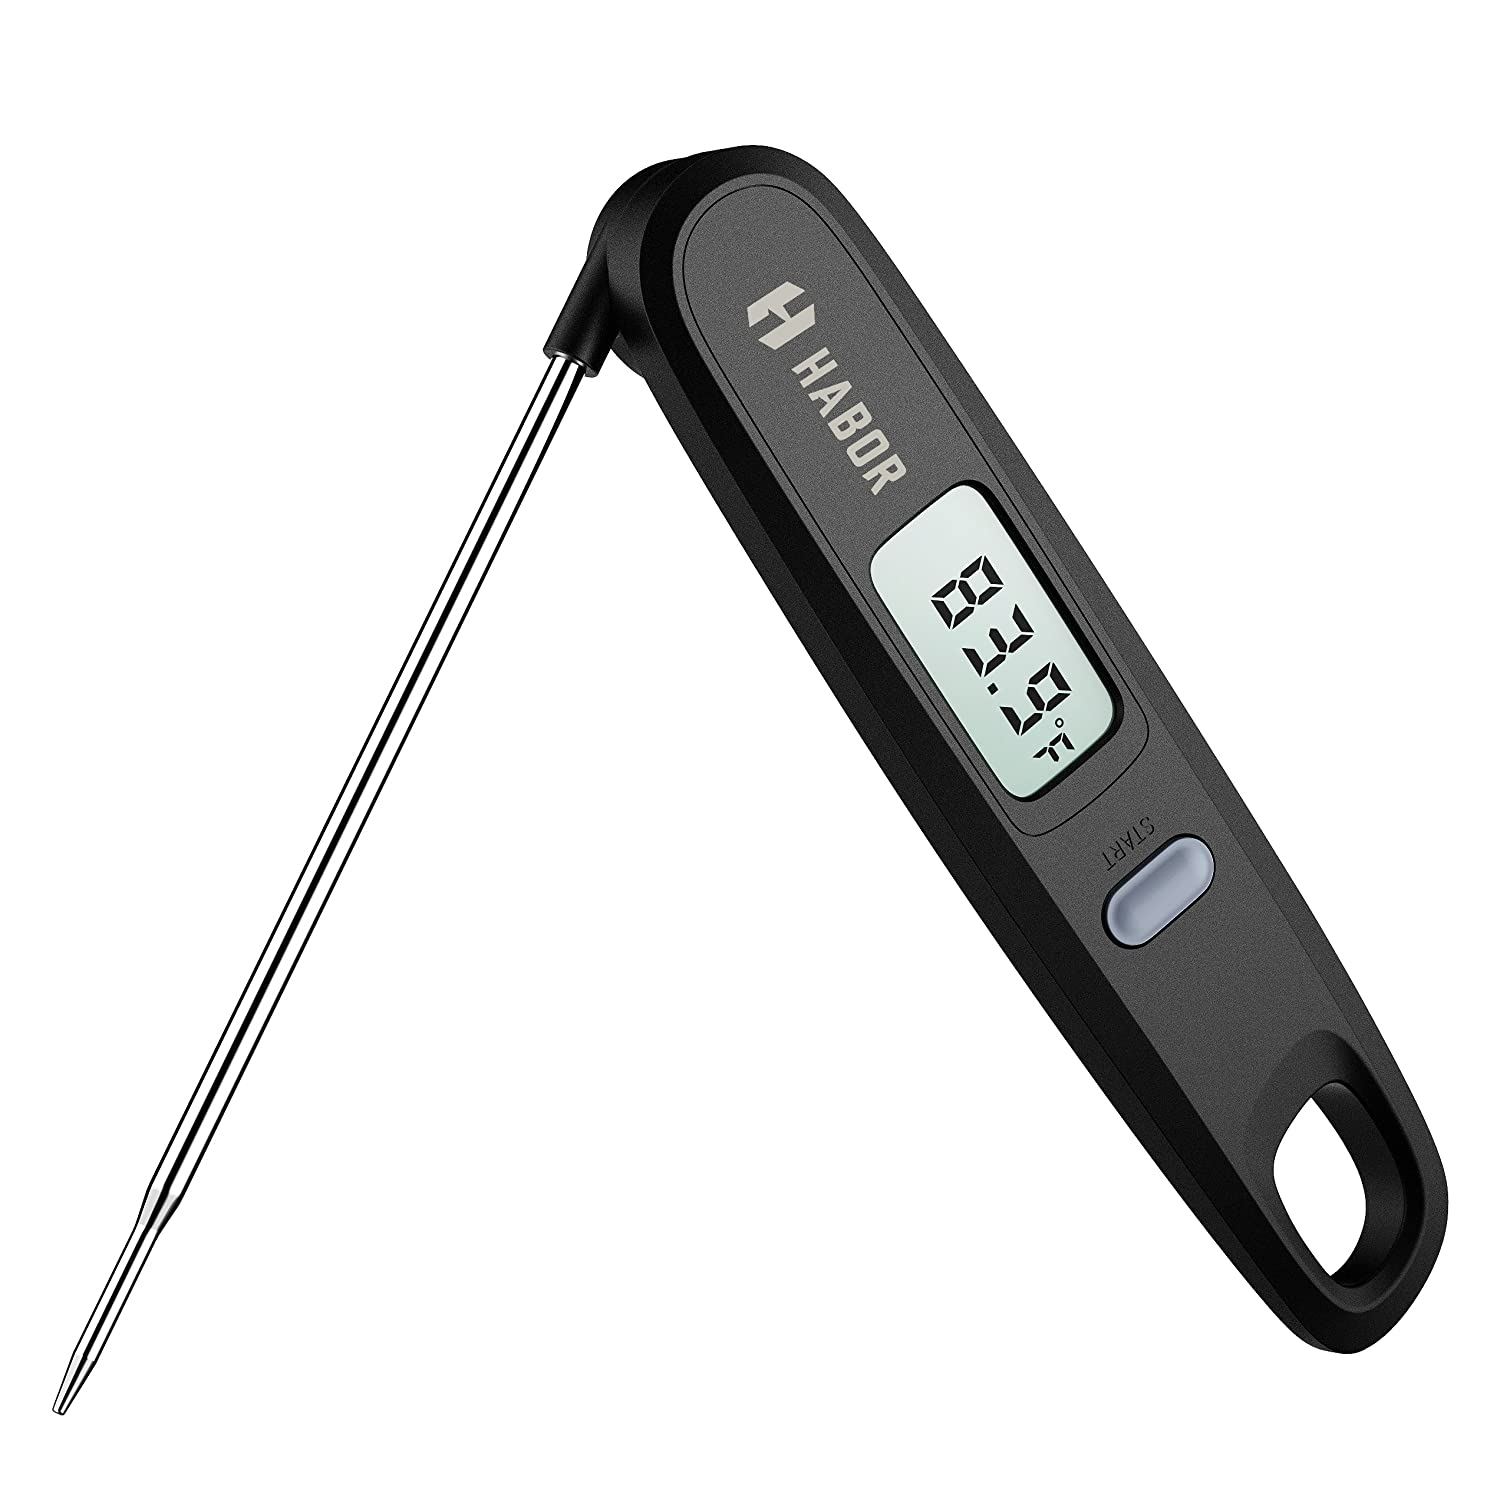 Habor HBCP050AB Instant Read Meat Thermometer